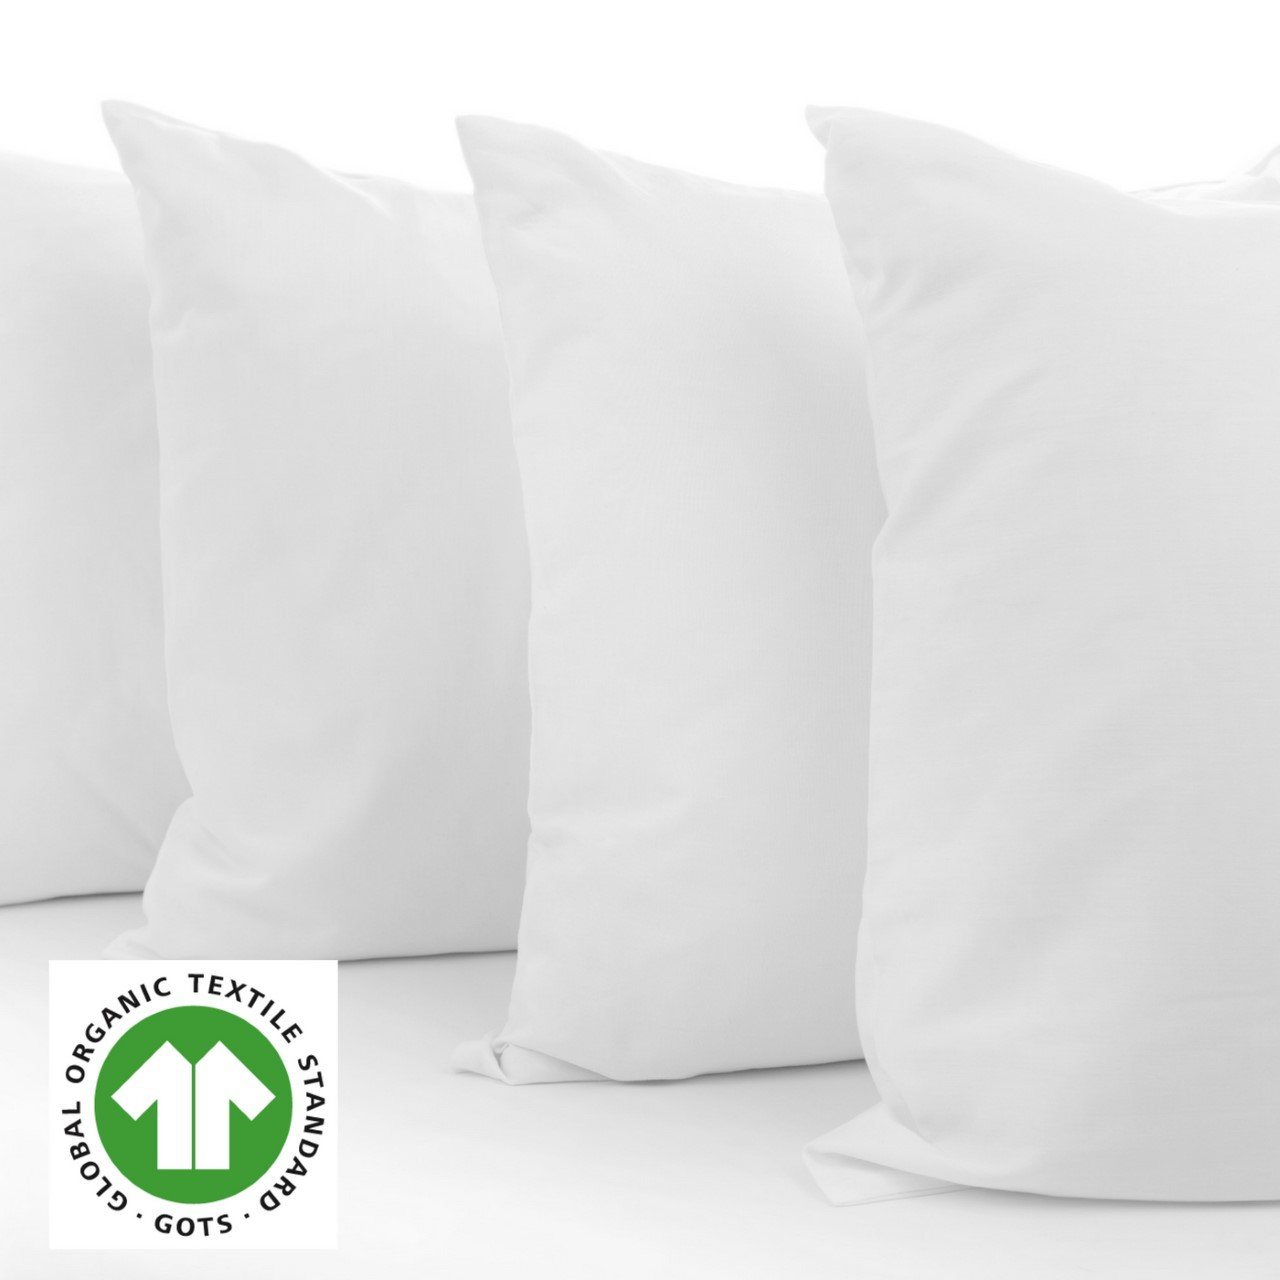 A1HC Organic Cotton Sterilized 95% feather 5% Down Pillow Insert 20 x 20'' White Set of 2 by A1 Home Collections